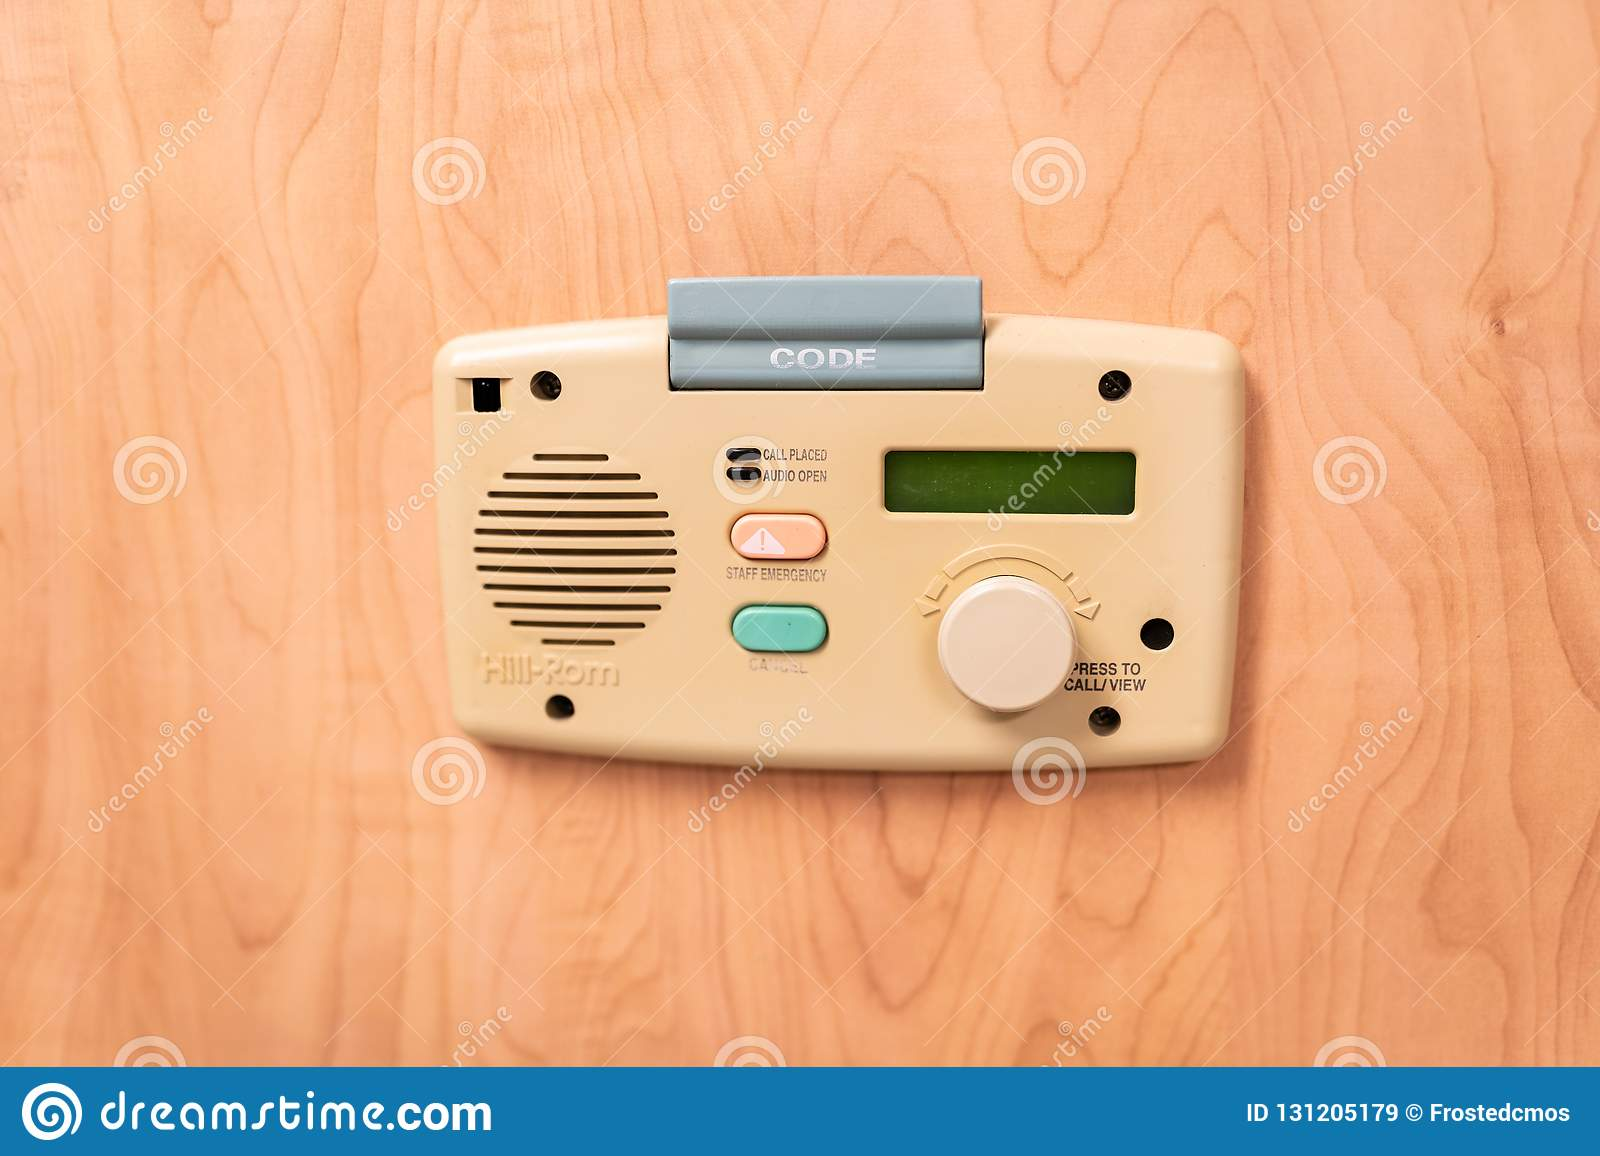 Patient-doctor communication system in emergency room